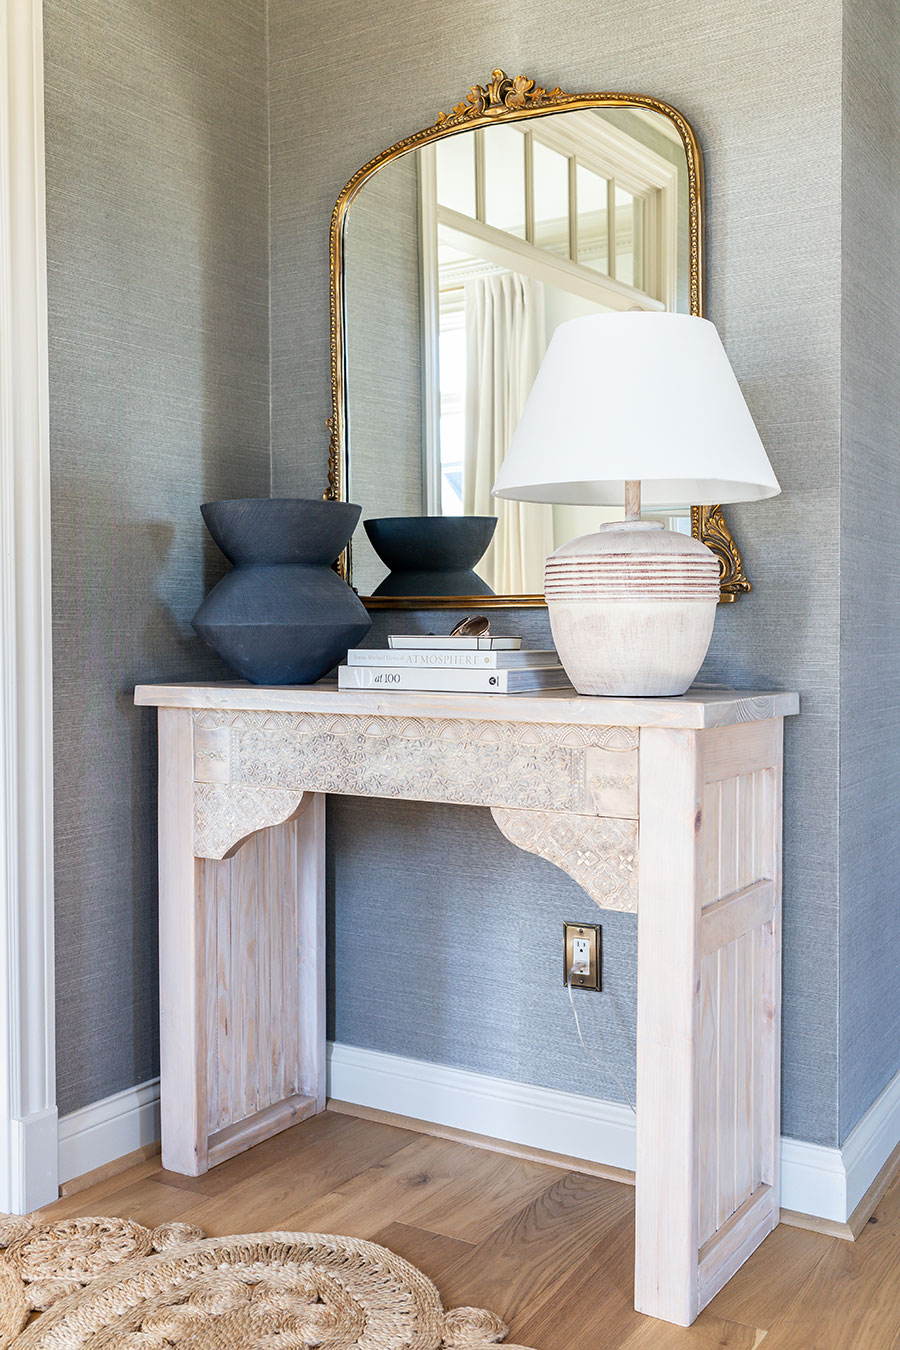 How to build a DIY carved entryway console table